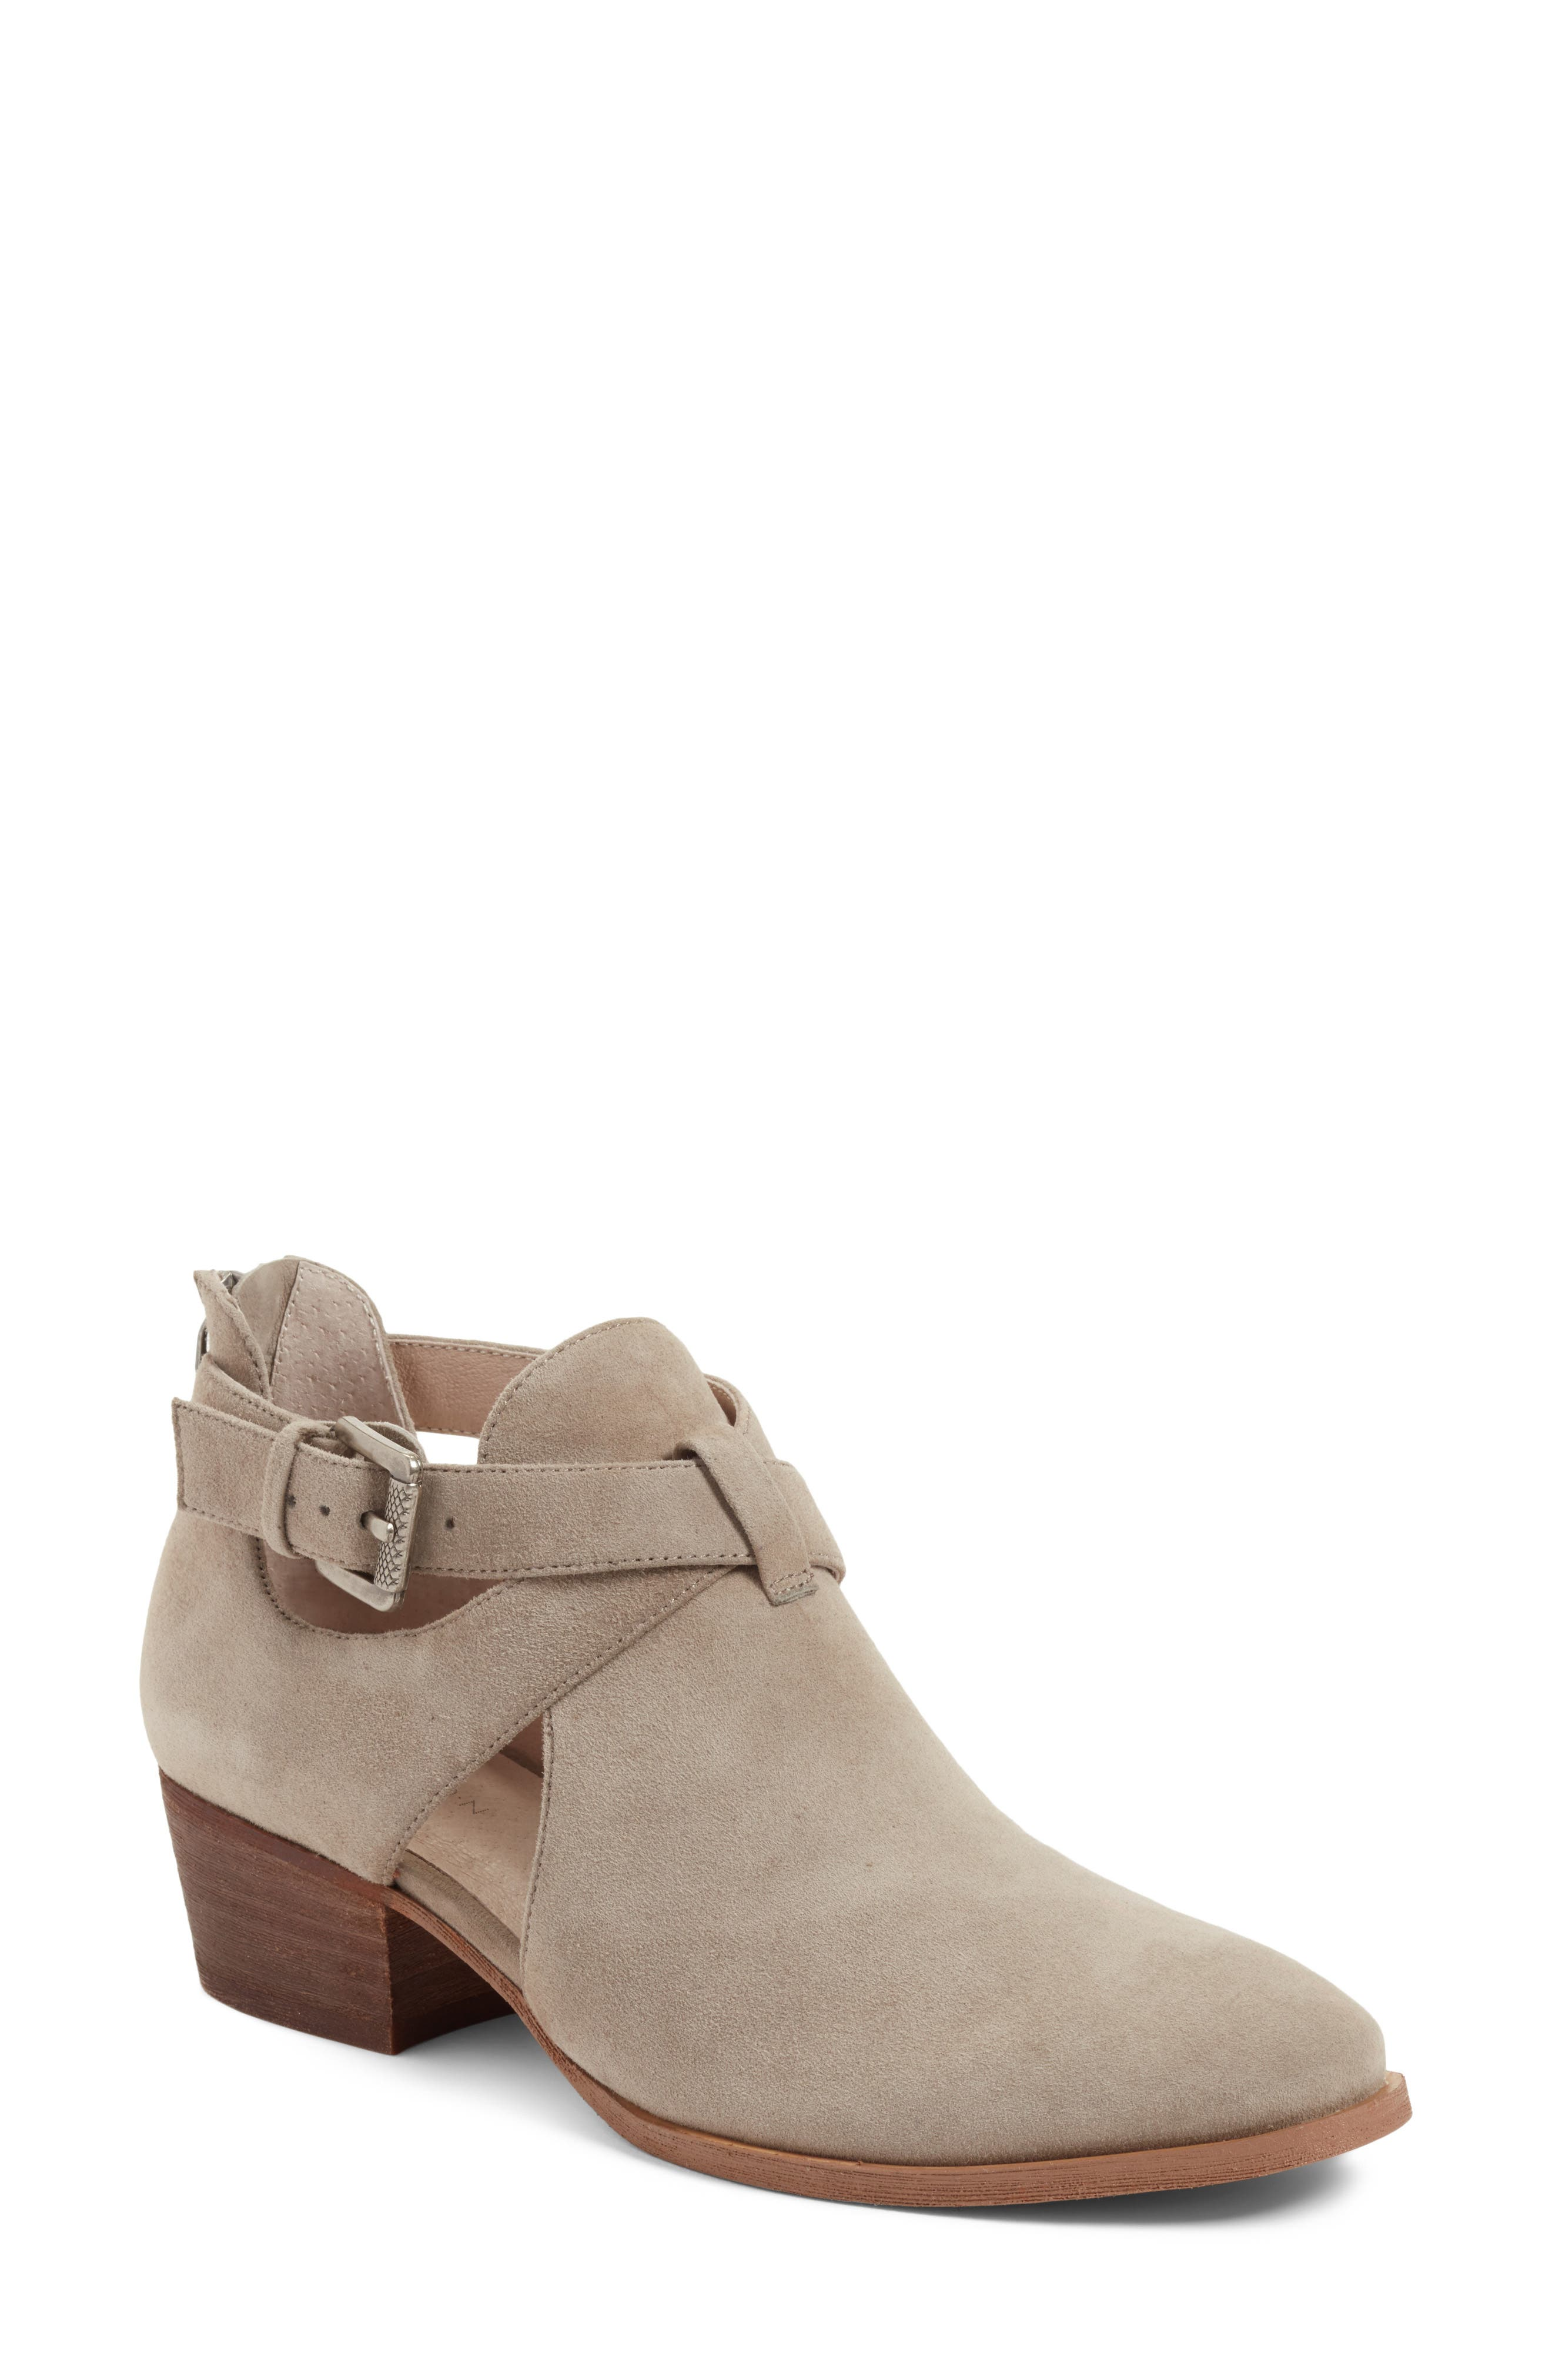 Tina Bootie,                             Main thumbnail 1, color,                             Stone Suede